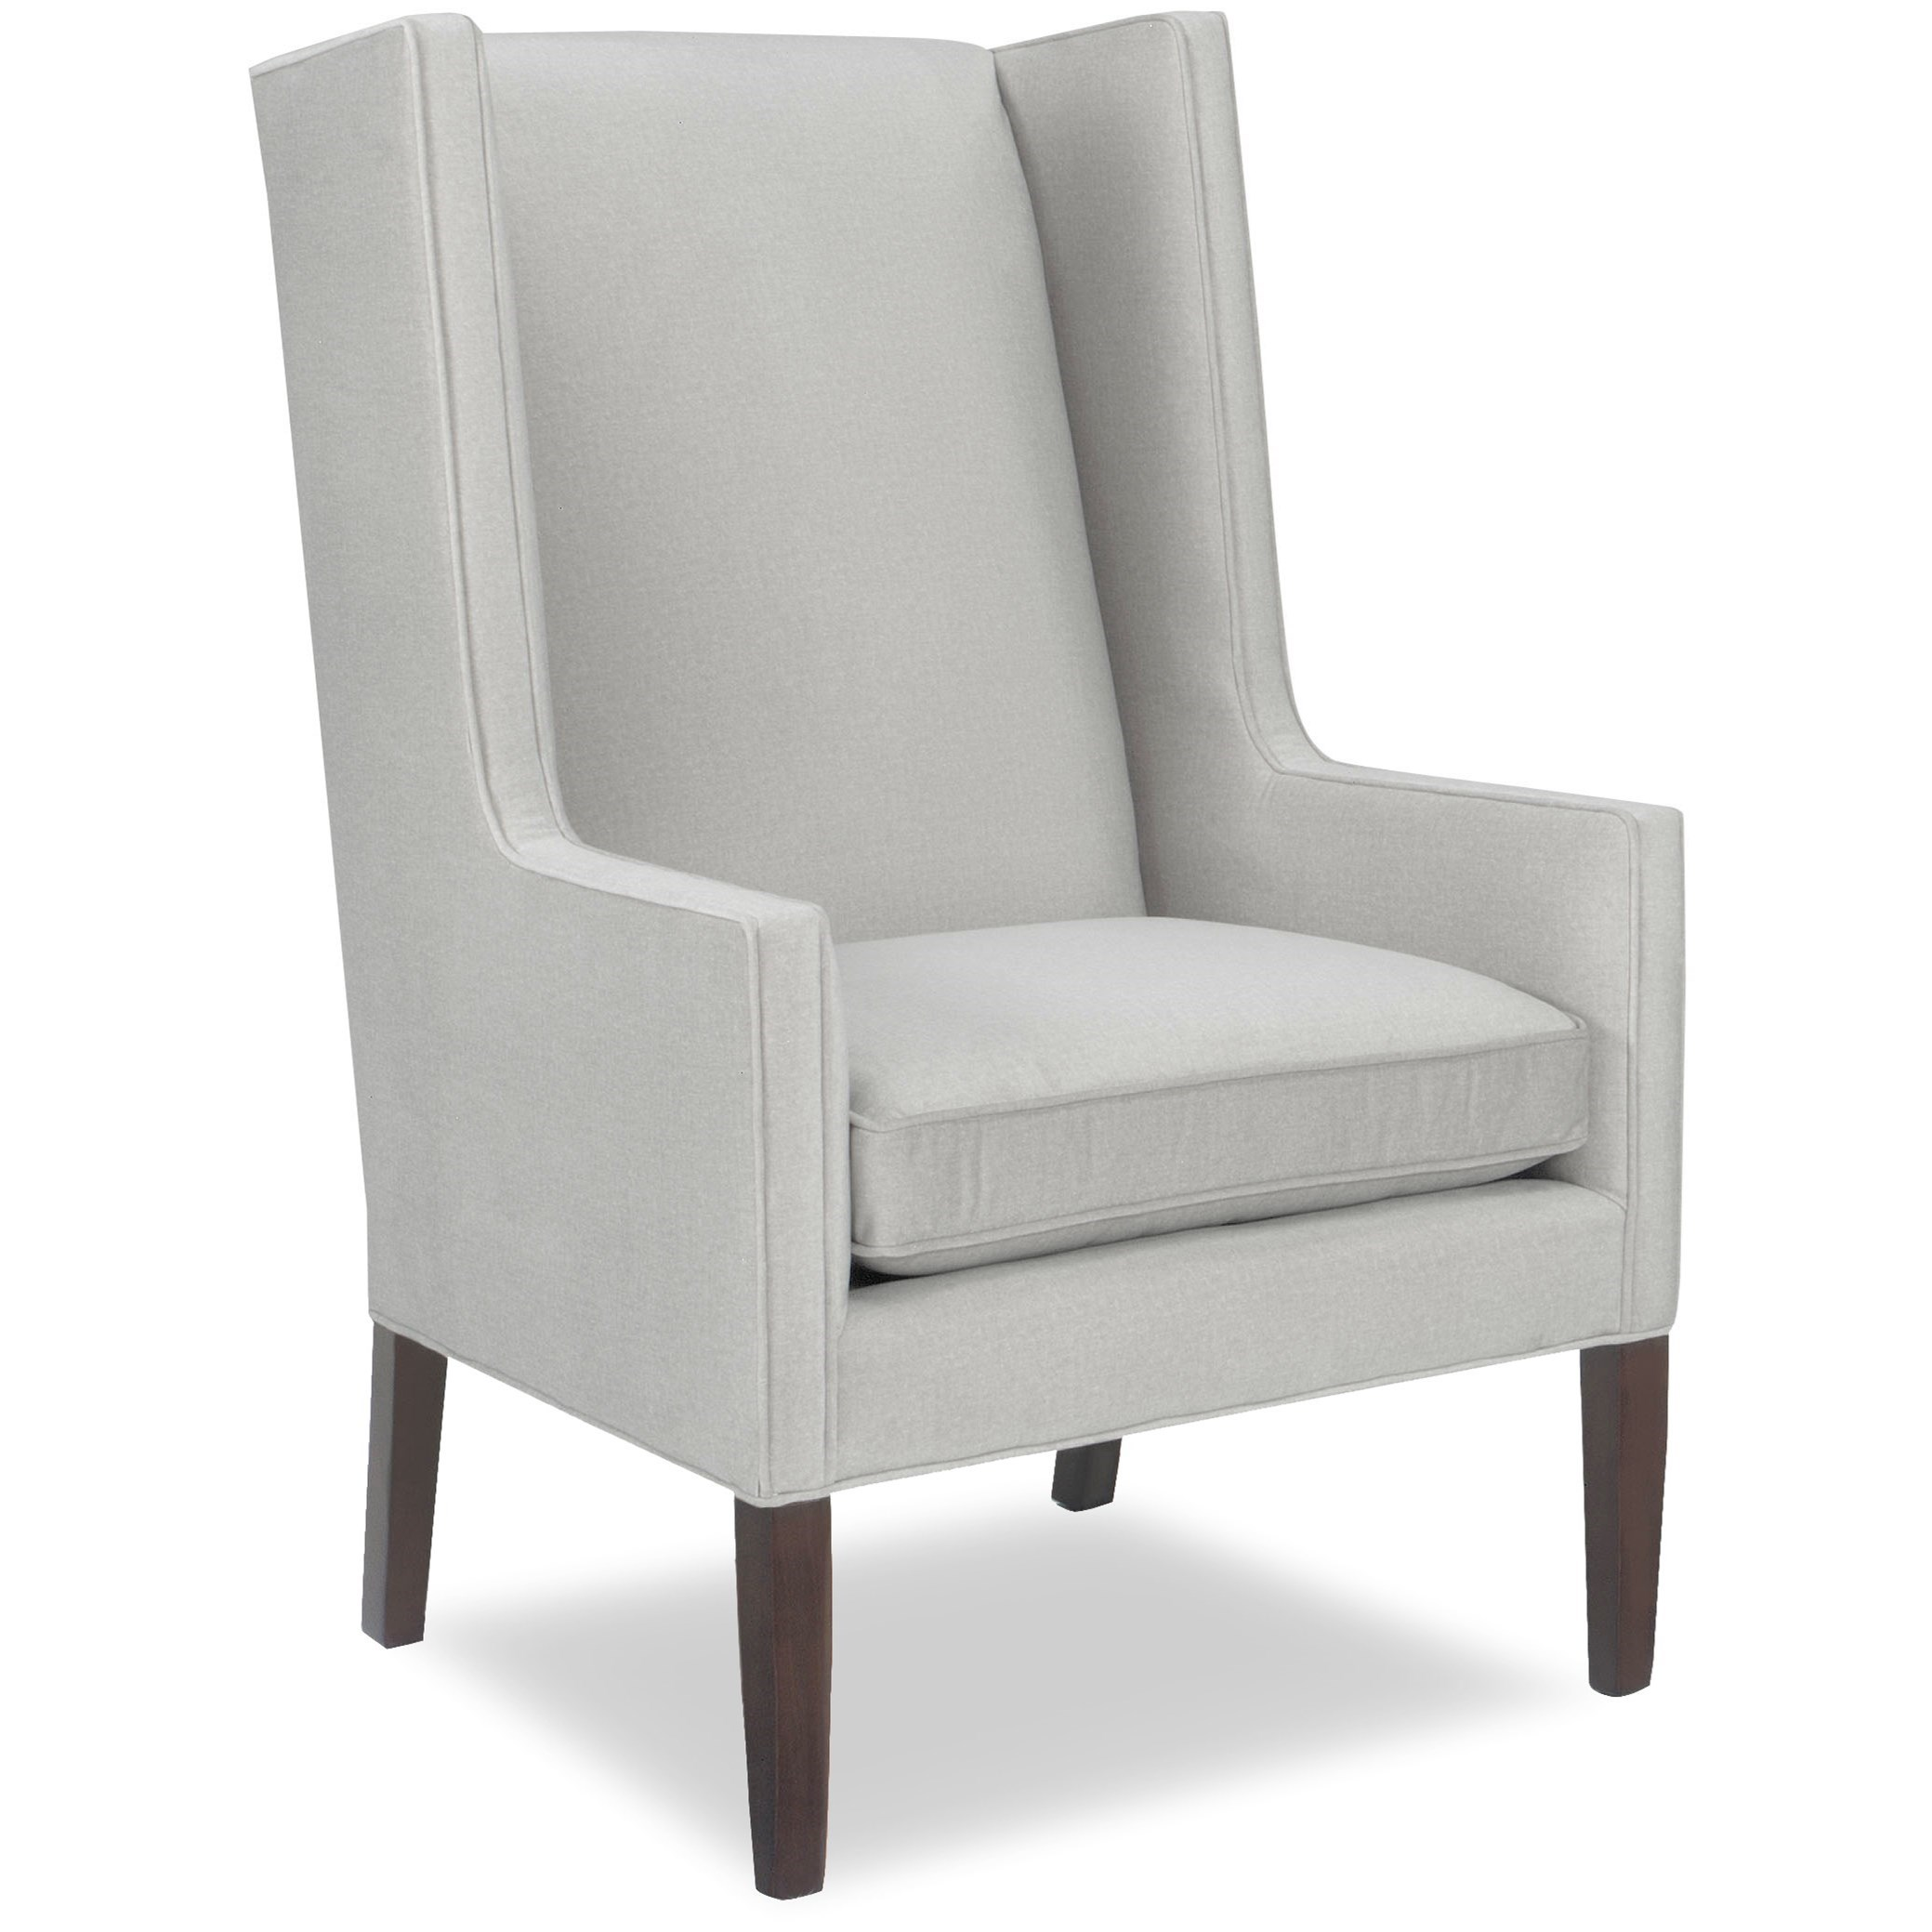 6300 Upholstered Chair by Temple Furniture at Jacksonville Furniture Mart